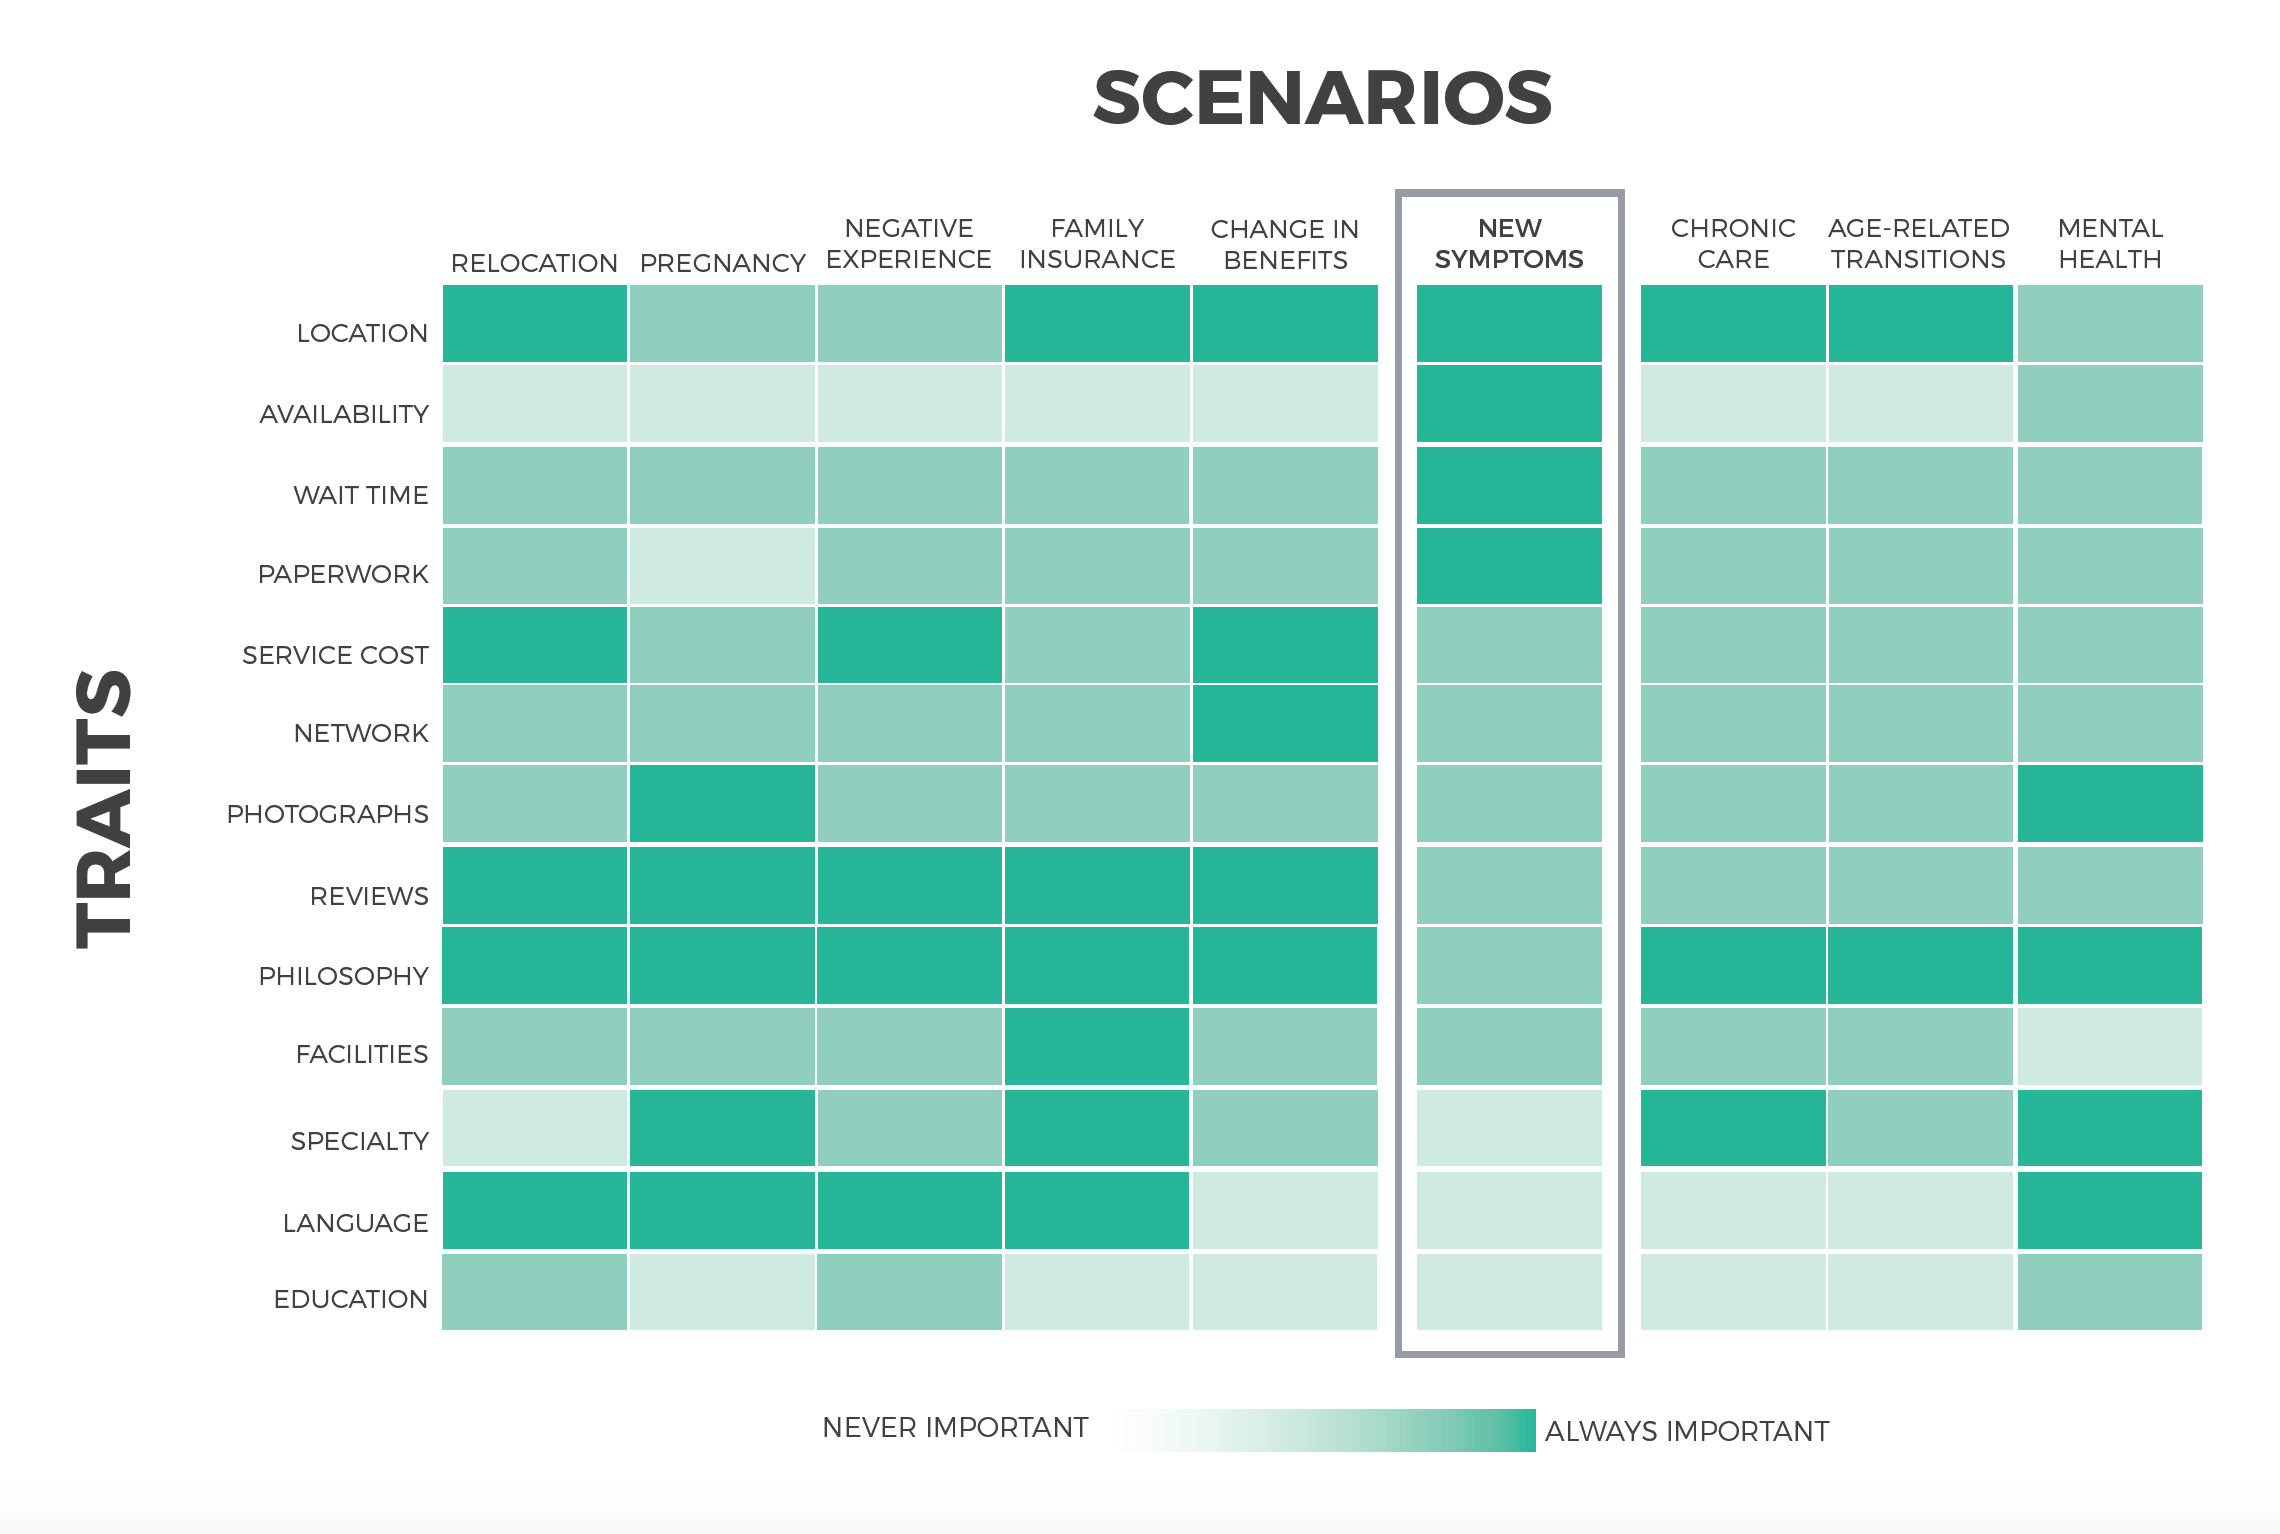 Before choosing a scenario to focus on, we researched and empathized with users seeking new doctors for a variety of reasons—this diagram shows how priorities vary across scenarios.